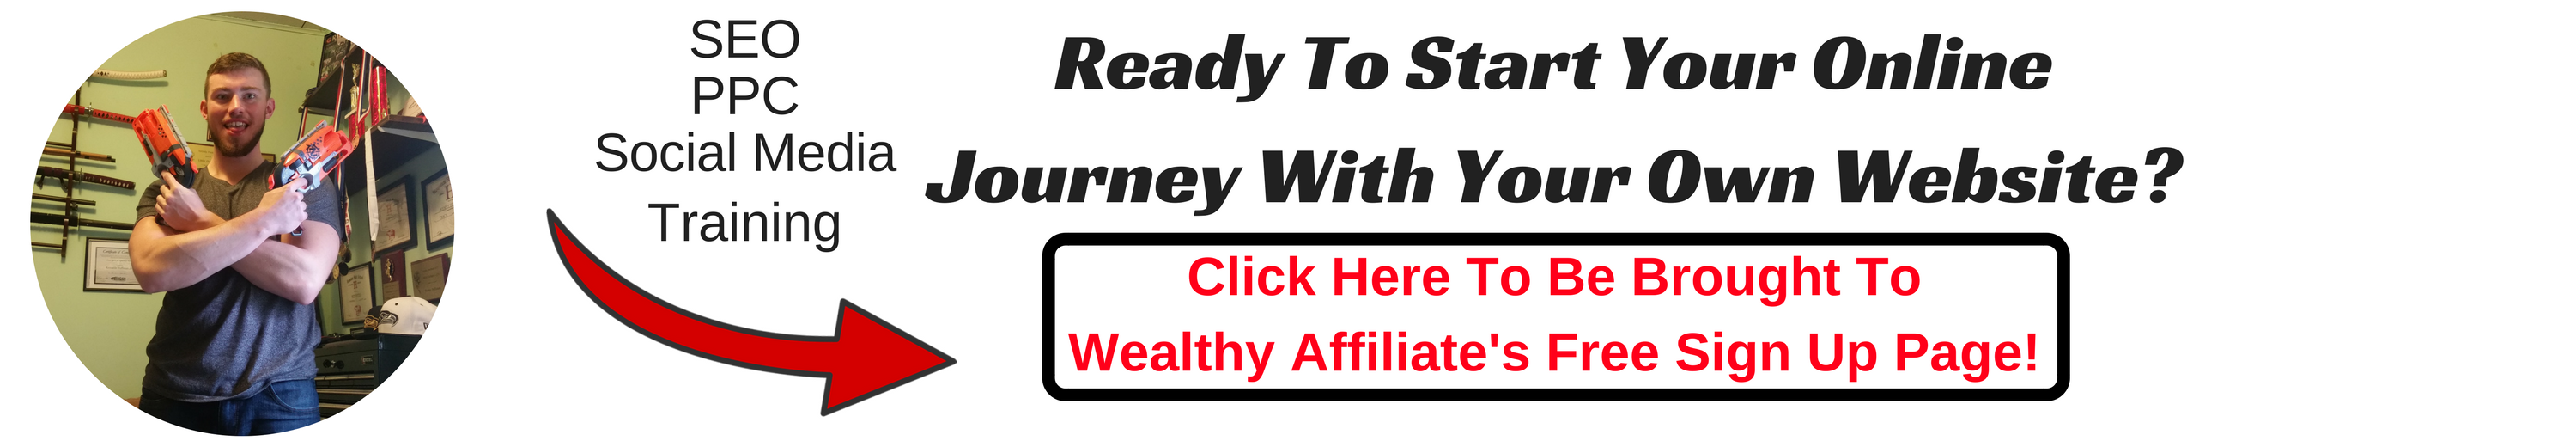 Ready To Start Your Online Journey With Your Own Website